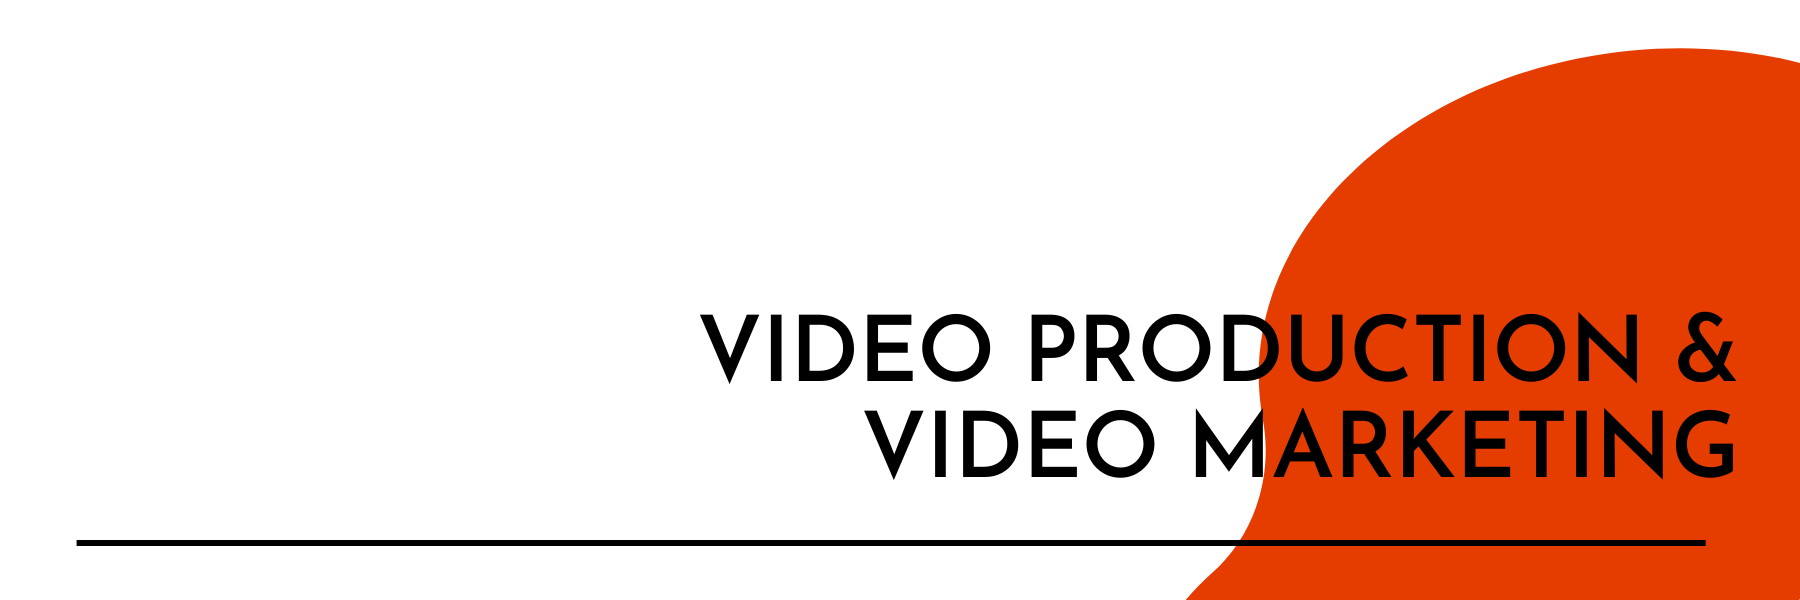 Videoproduction&marketing